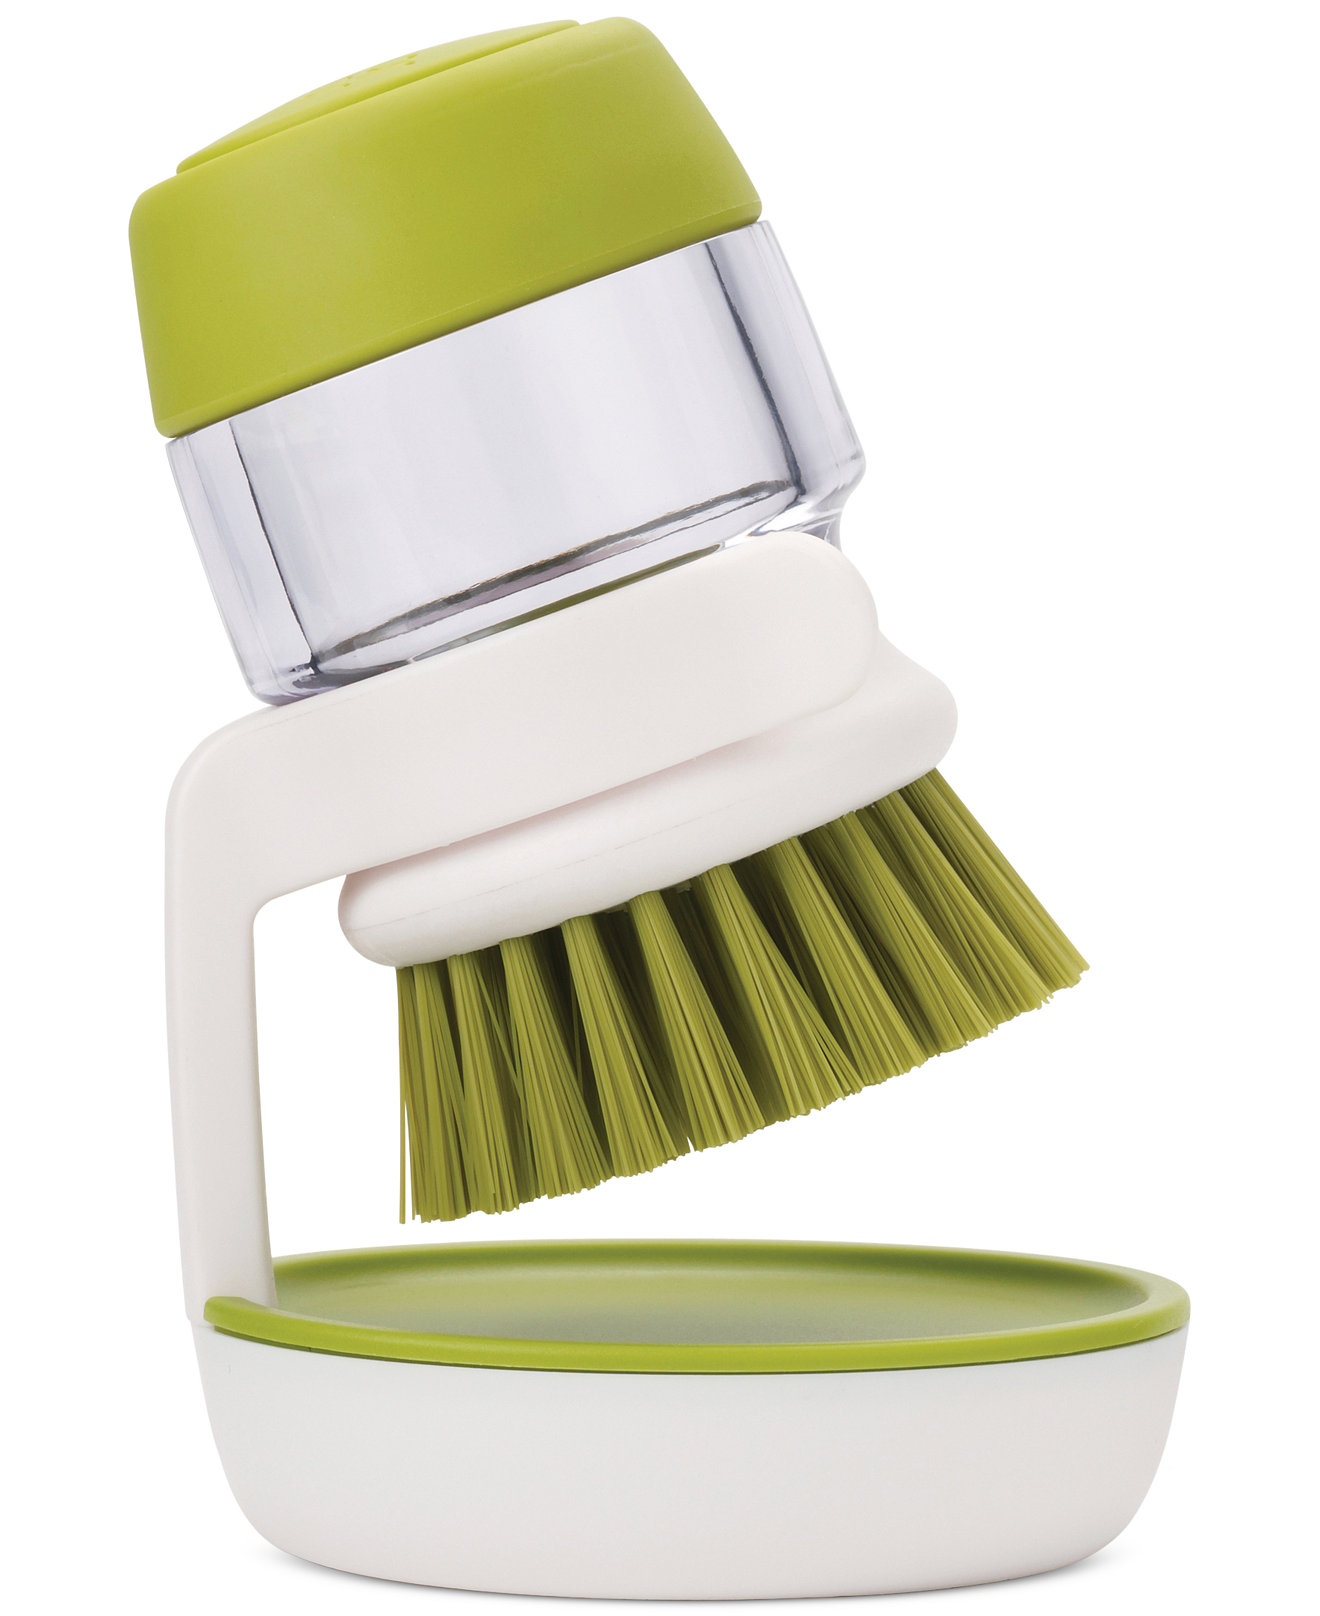 JJ Palm Scrub Brush Soap Dispensing Grn